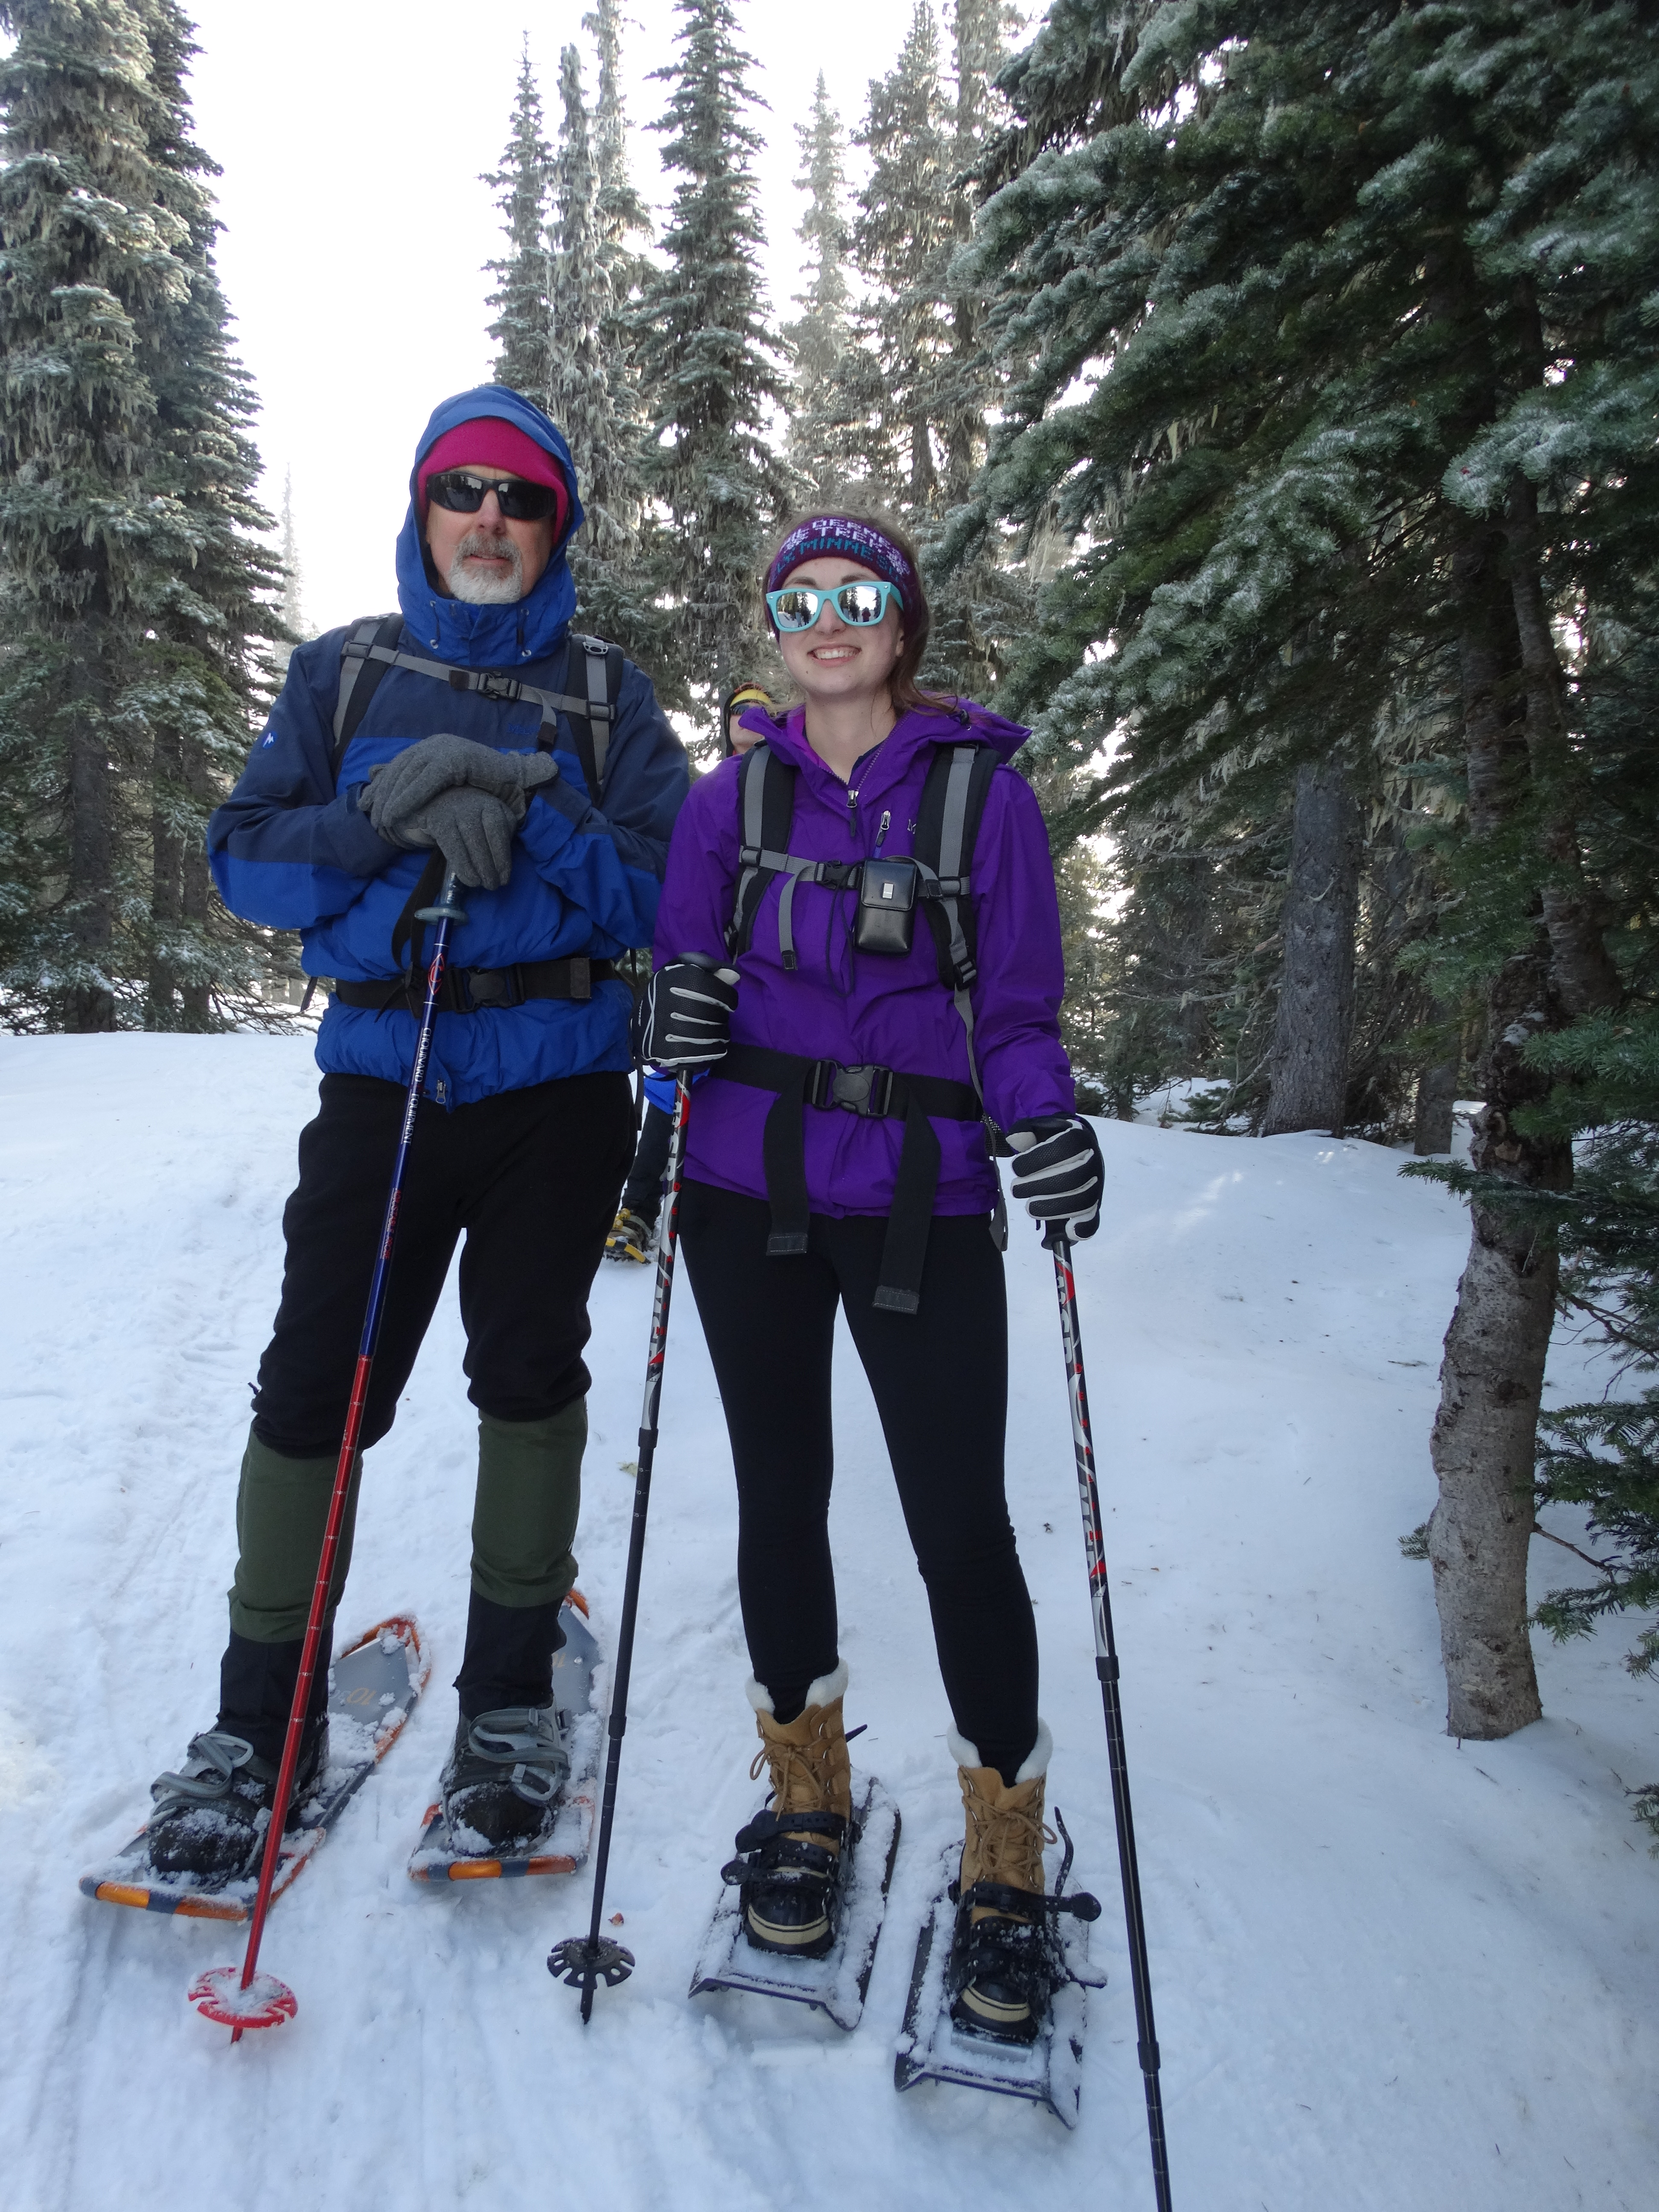 2019 year for girls- Wear to what snowshoeing grouse